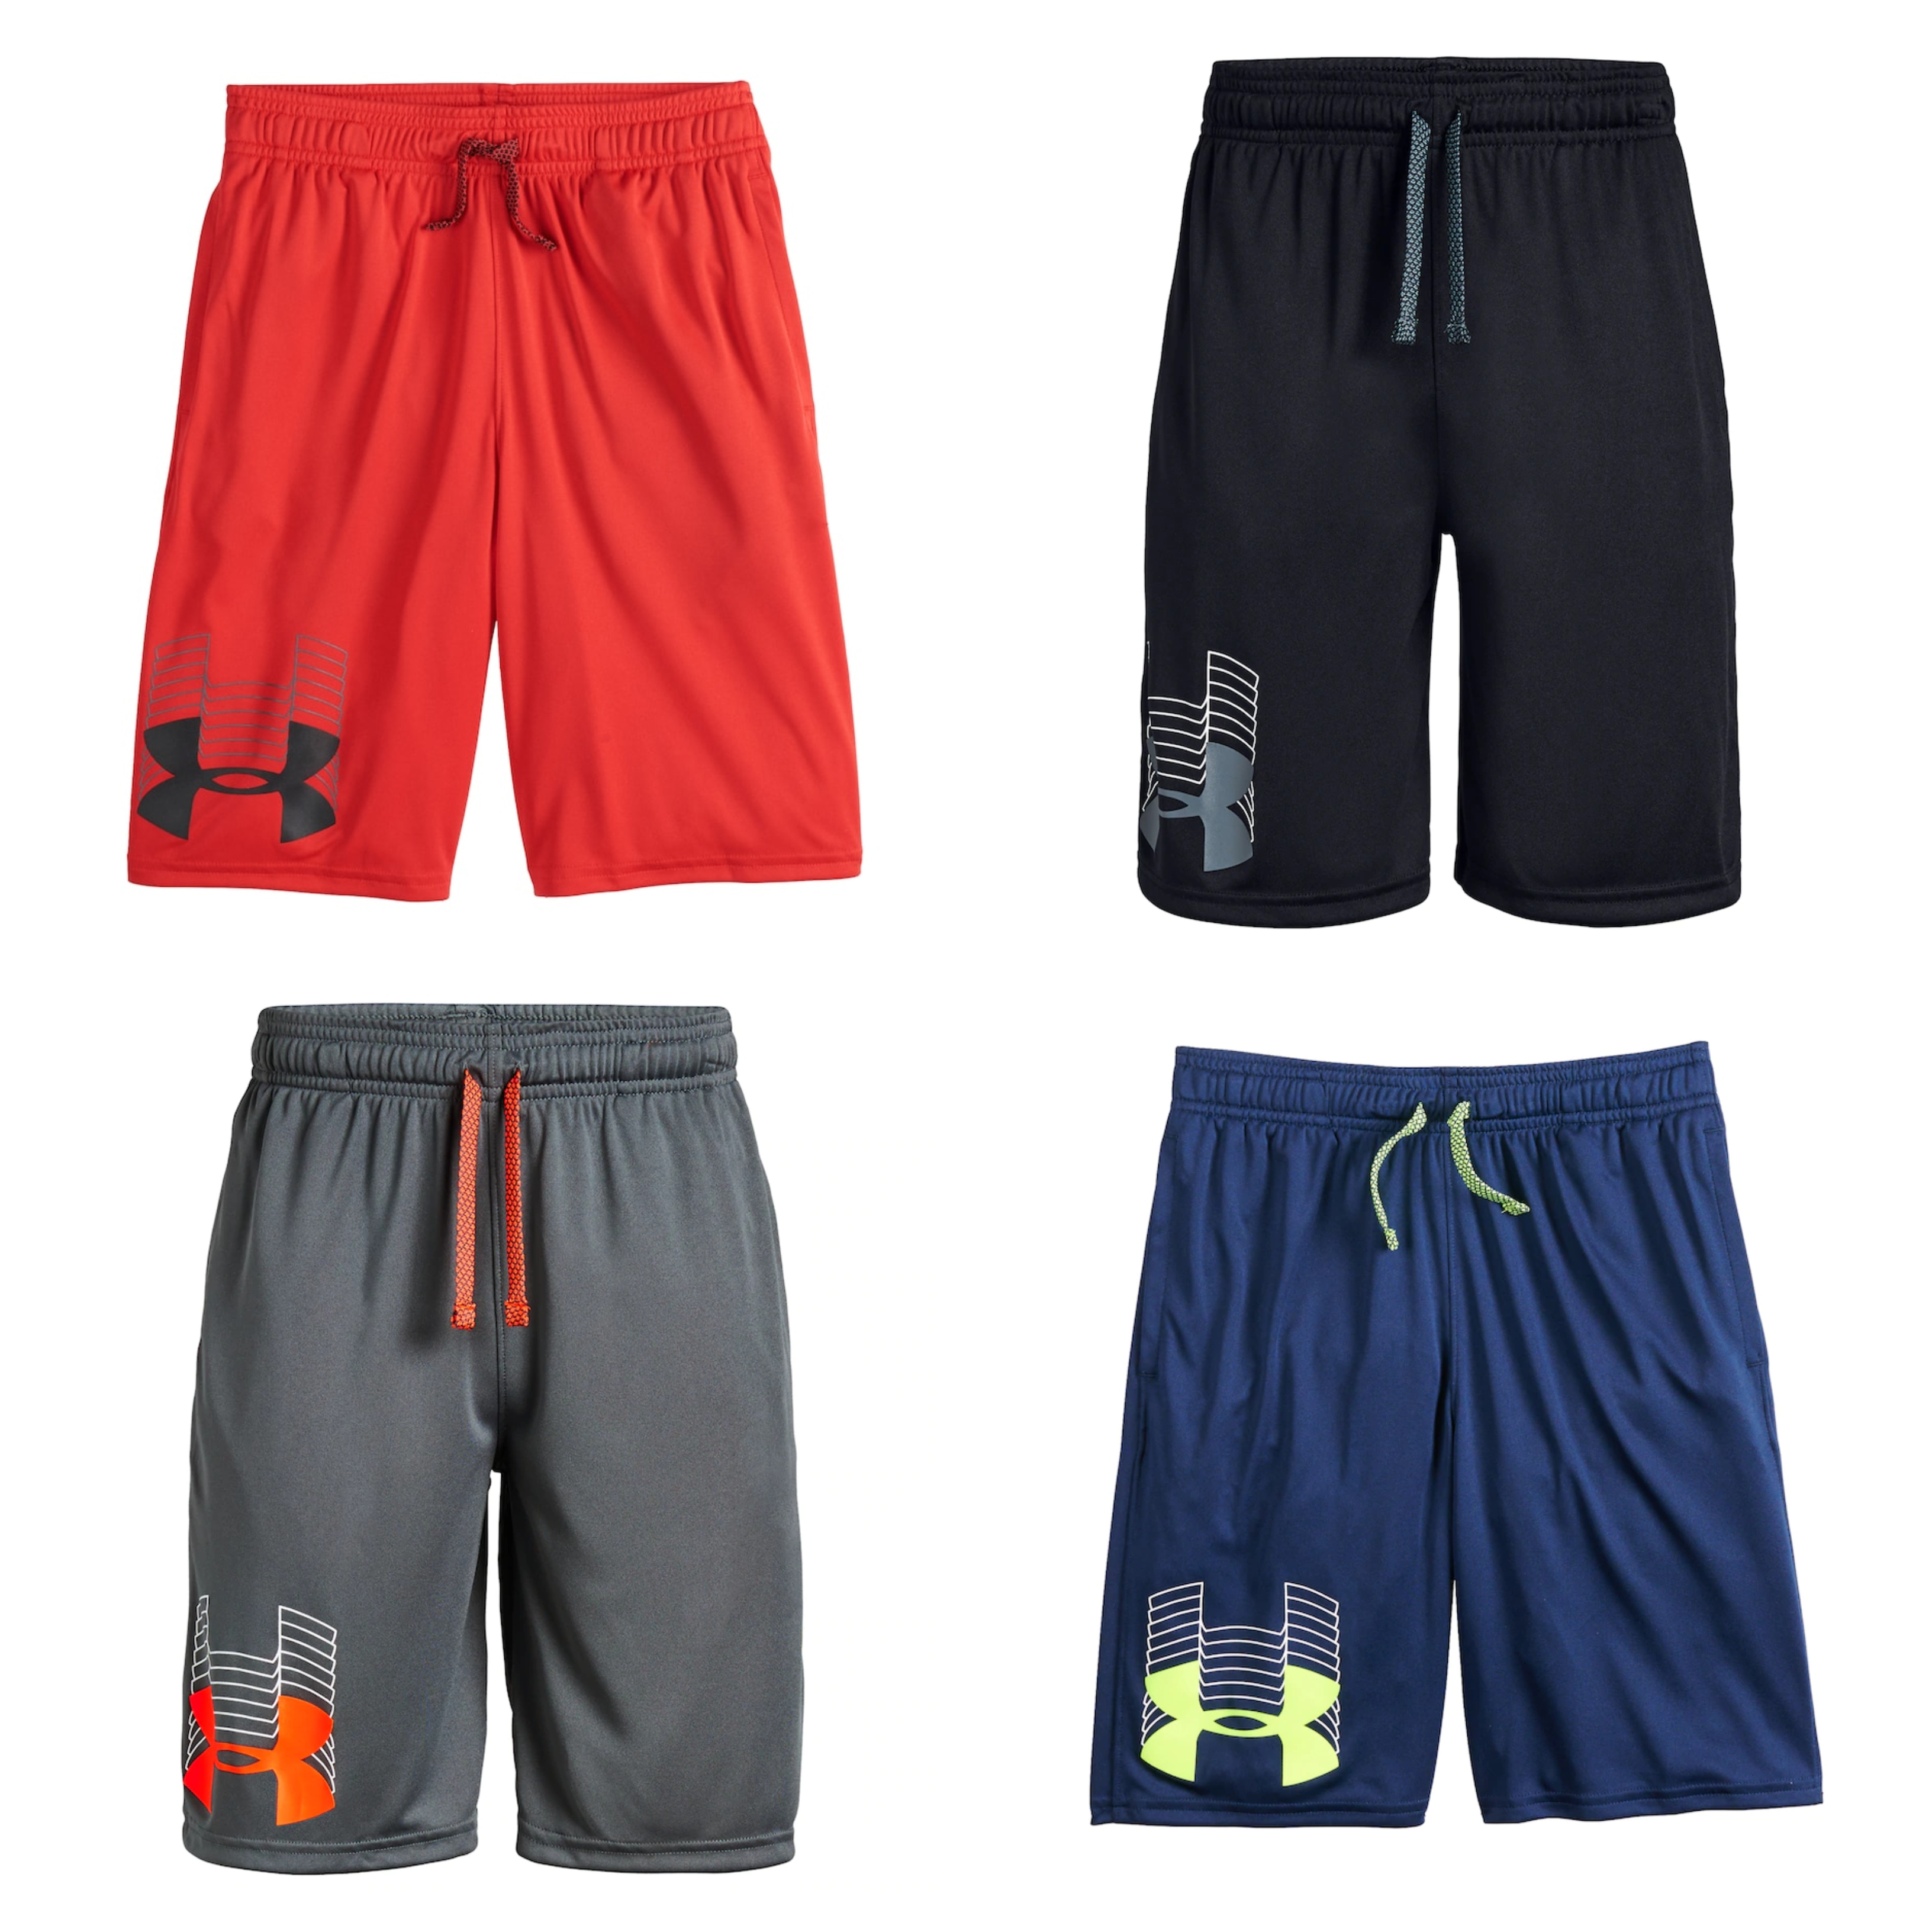 f7fb207da Kohl's: Boys Under Armour Shorts – only $15! – Wear It For Less